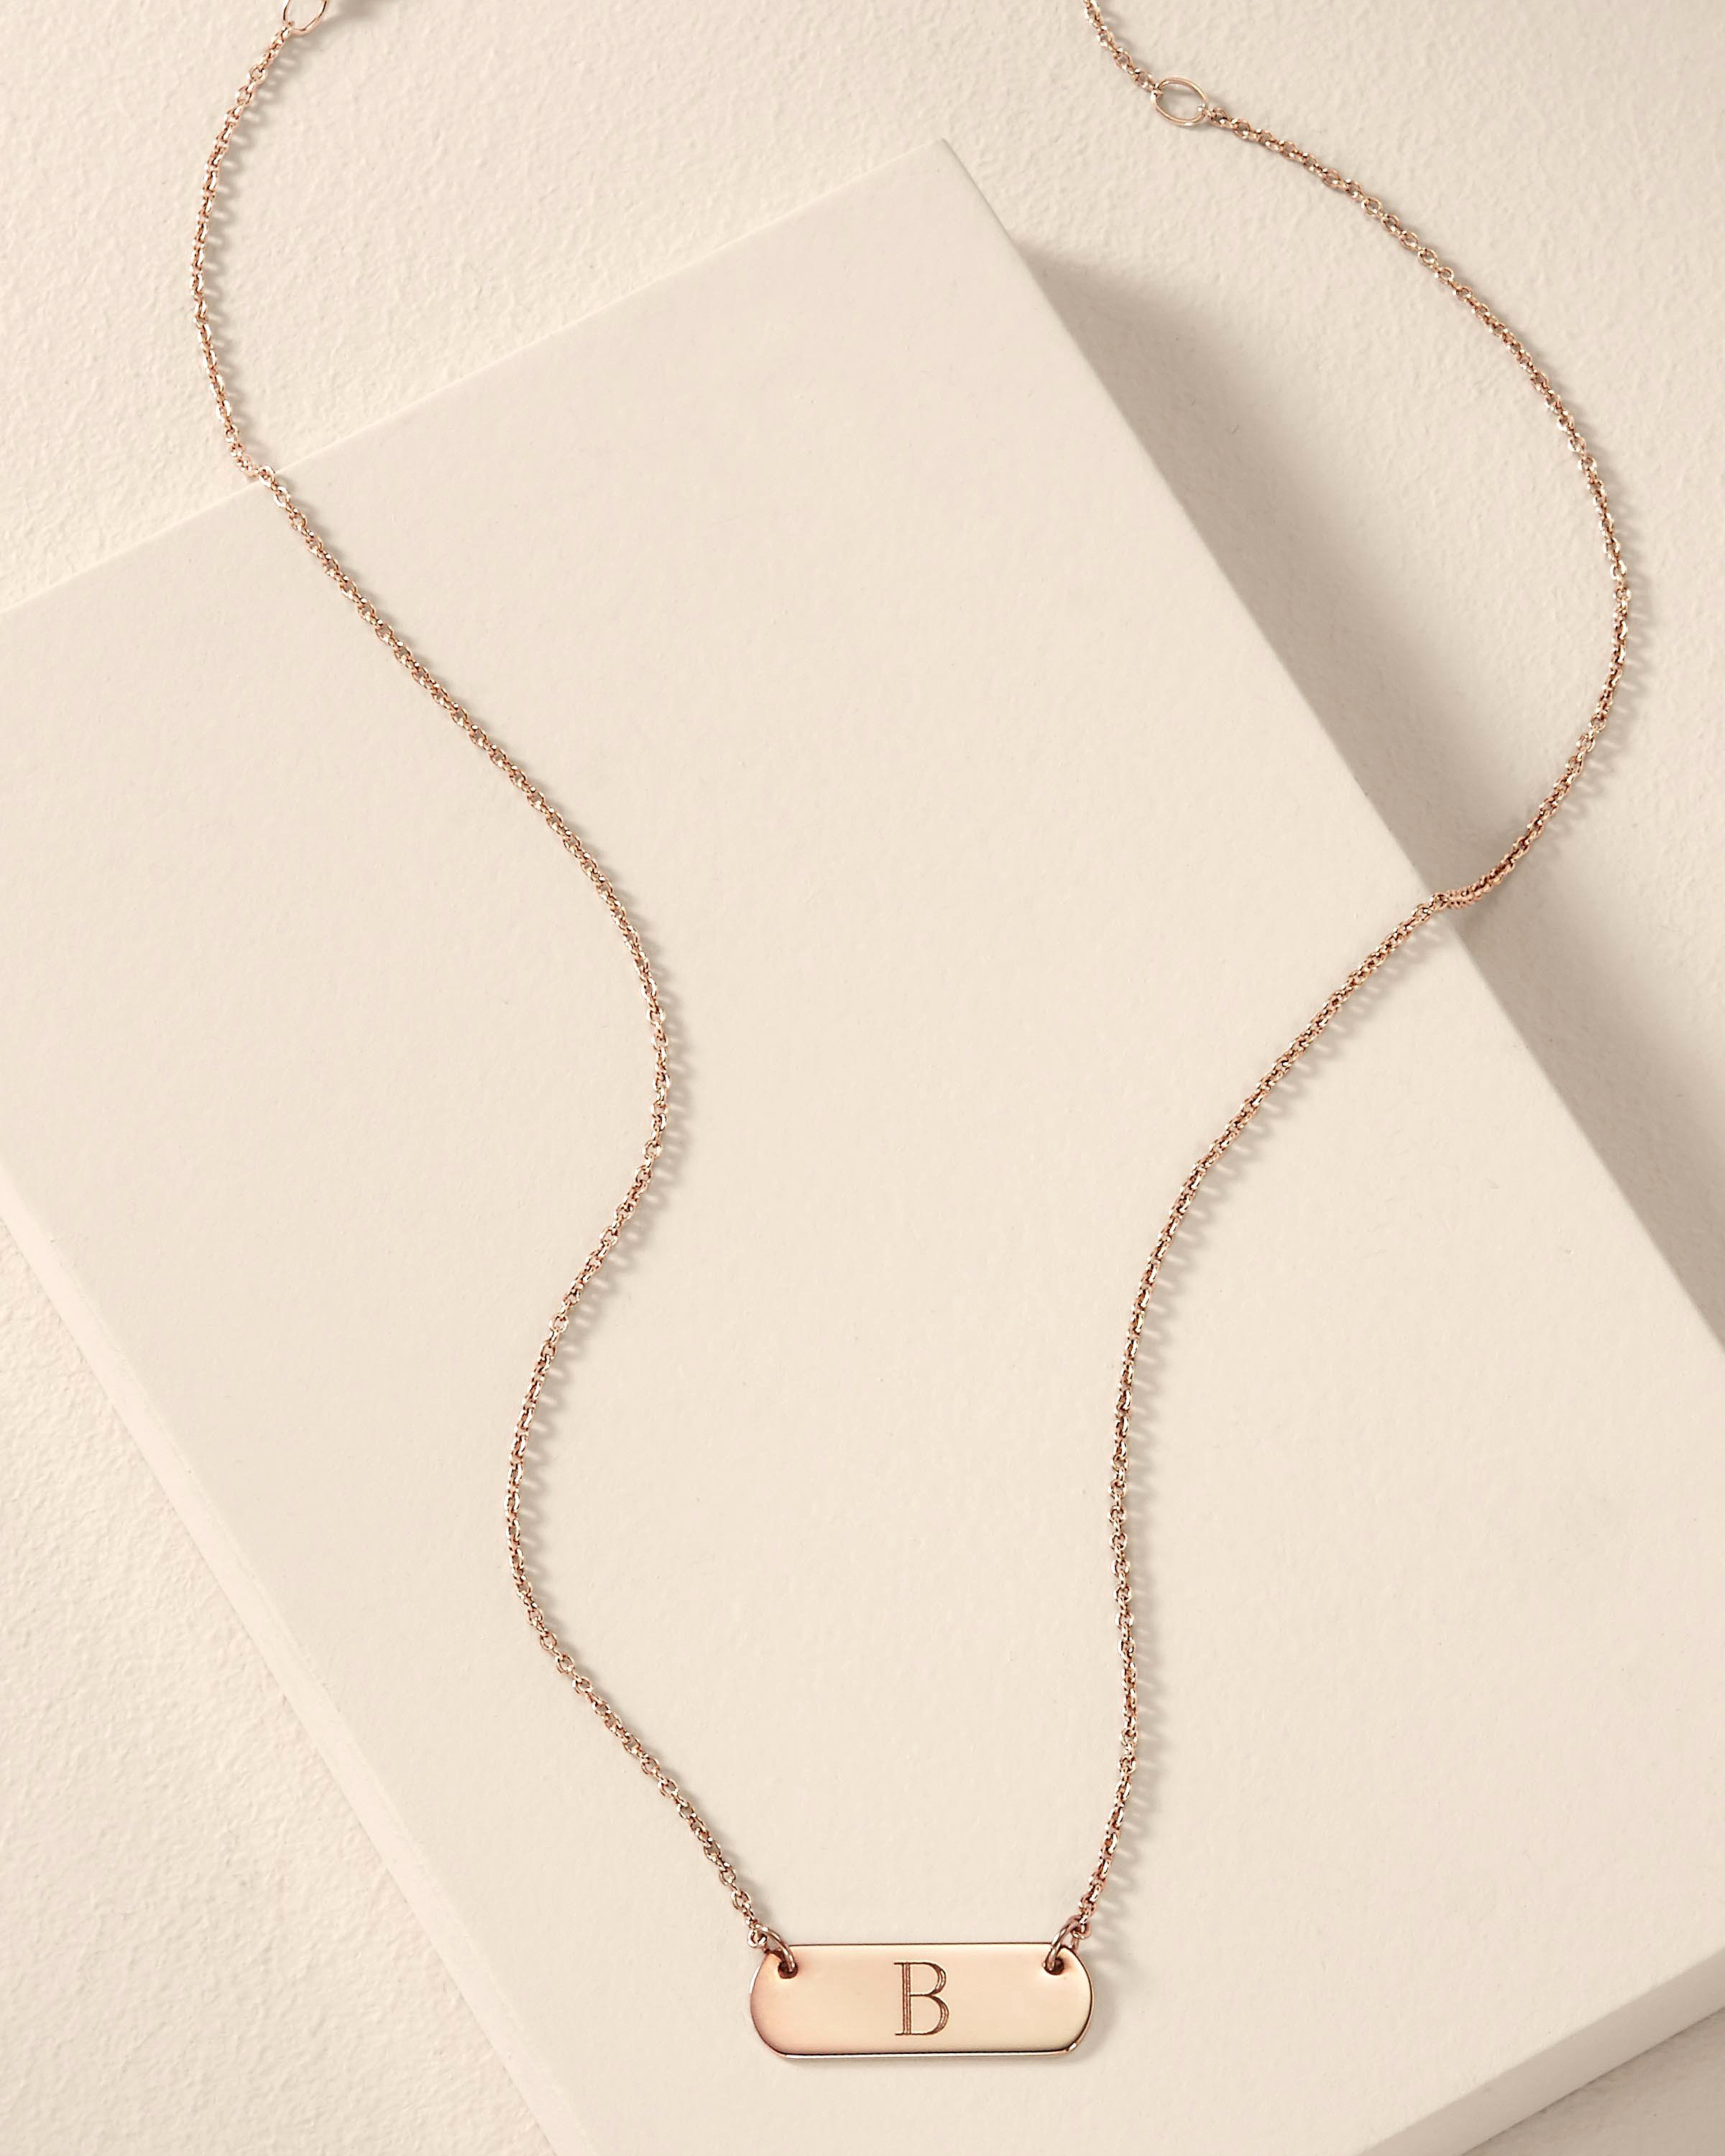 252457ae8fb Personalized Jewelry Gifts Your Bridesmaids Will Love | Martha ...